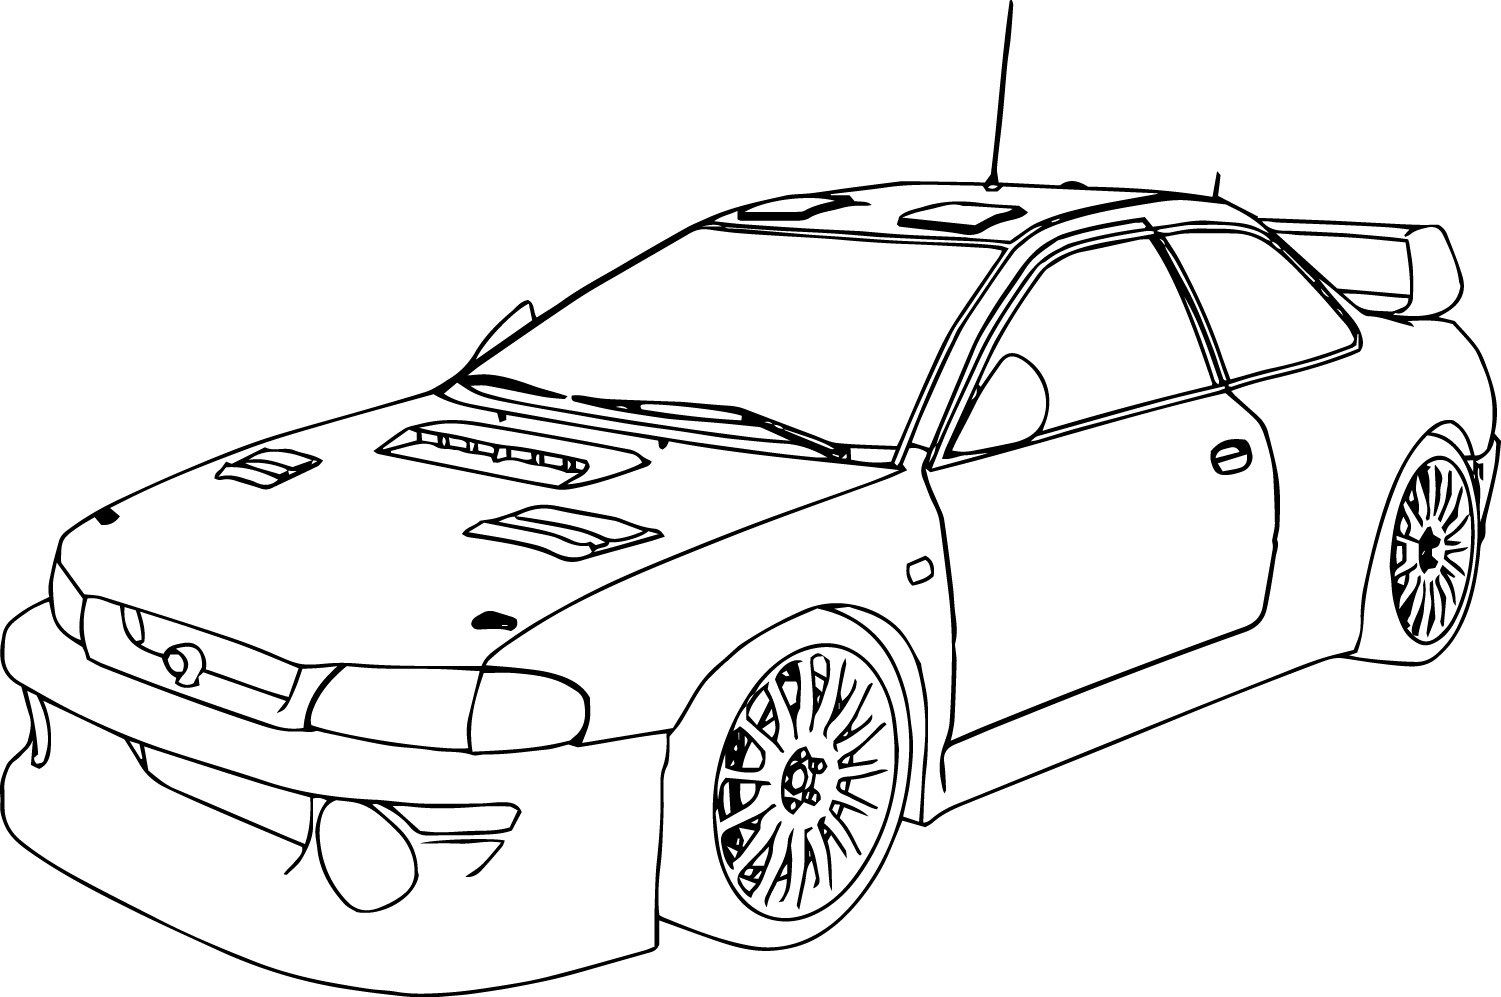 cars for coloring muscle car coloring pages to download and print for free for coloring cars